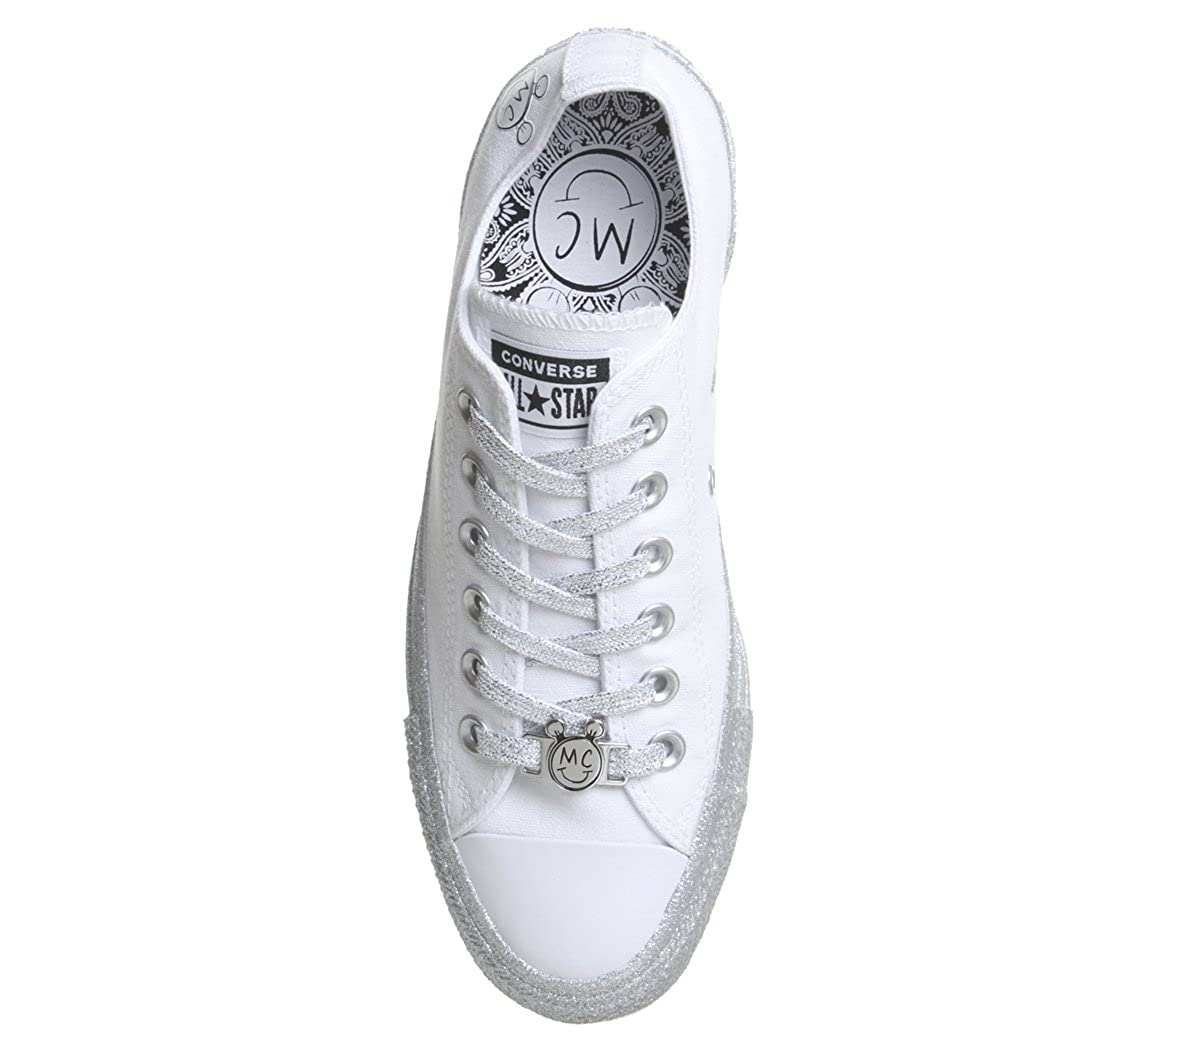 6087d37115f0 Converse CTAS Classic Ox Trainers  Amazon.co.uk  Shoes   Bags